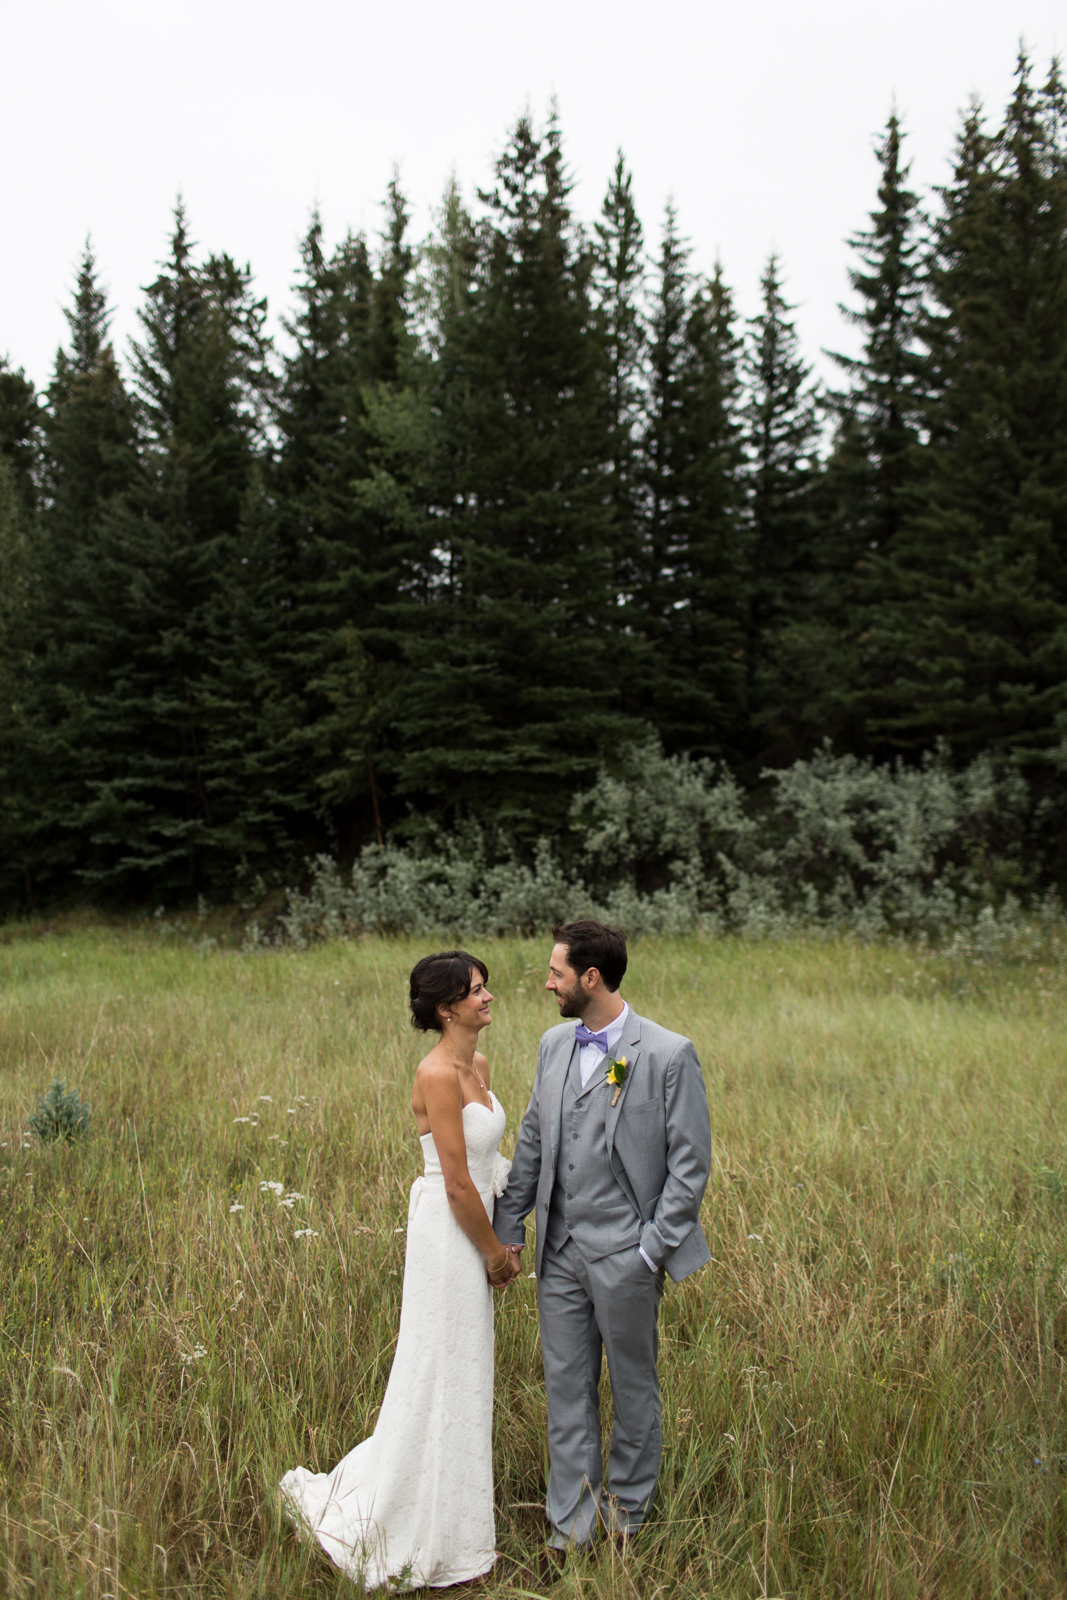 61Willow_and_wolf_Calgary_Wedding Photography-61-229Andrew_Pavlidis_Photography_Silene_and_Sacha_Canmore_Wedding-3586